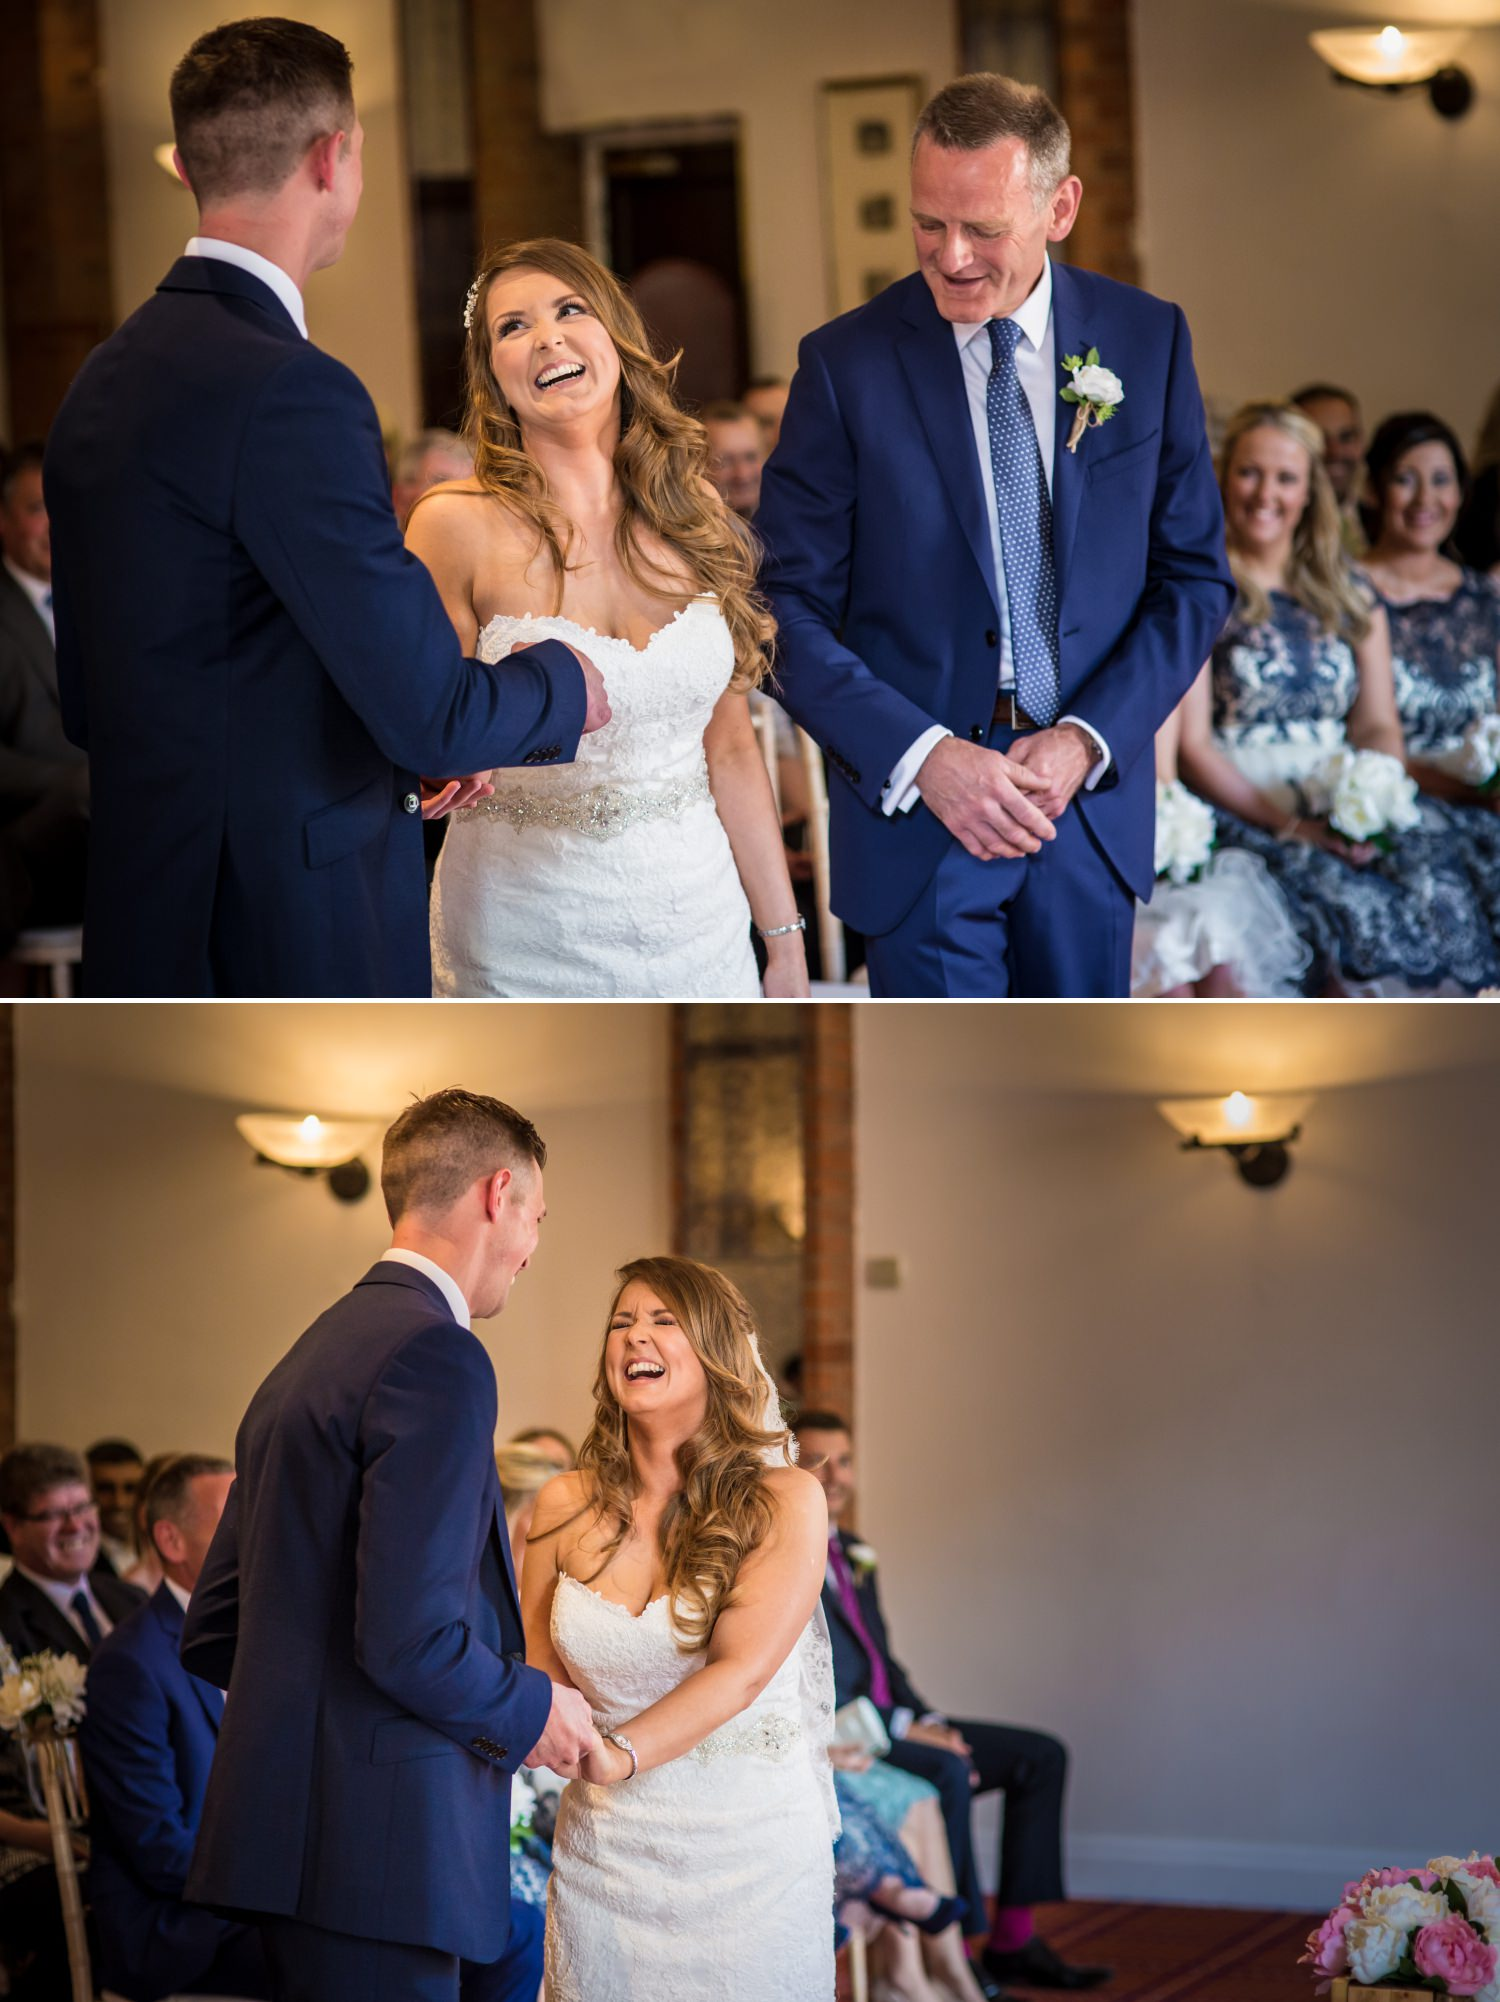 Wedding Photograph of ceremony at Carden Park